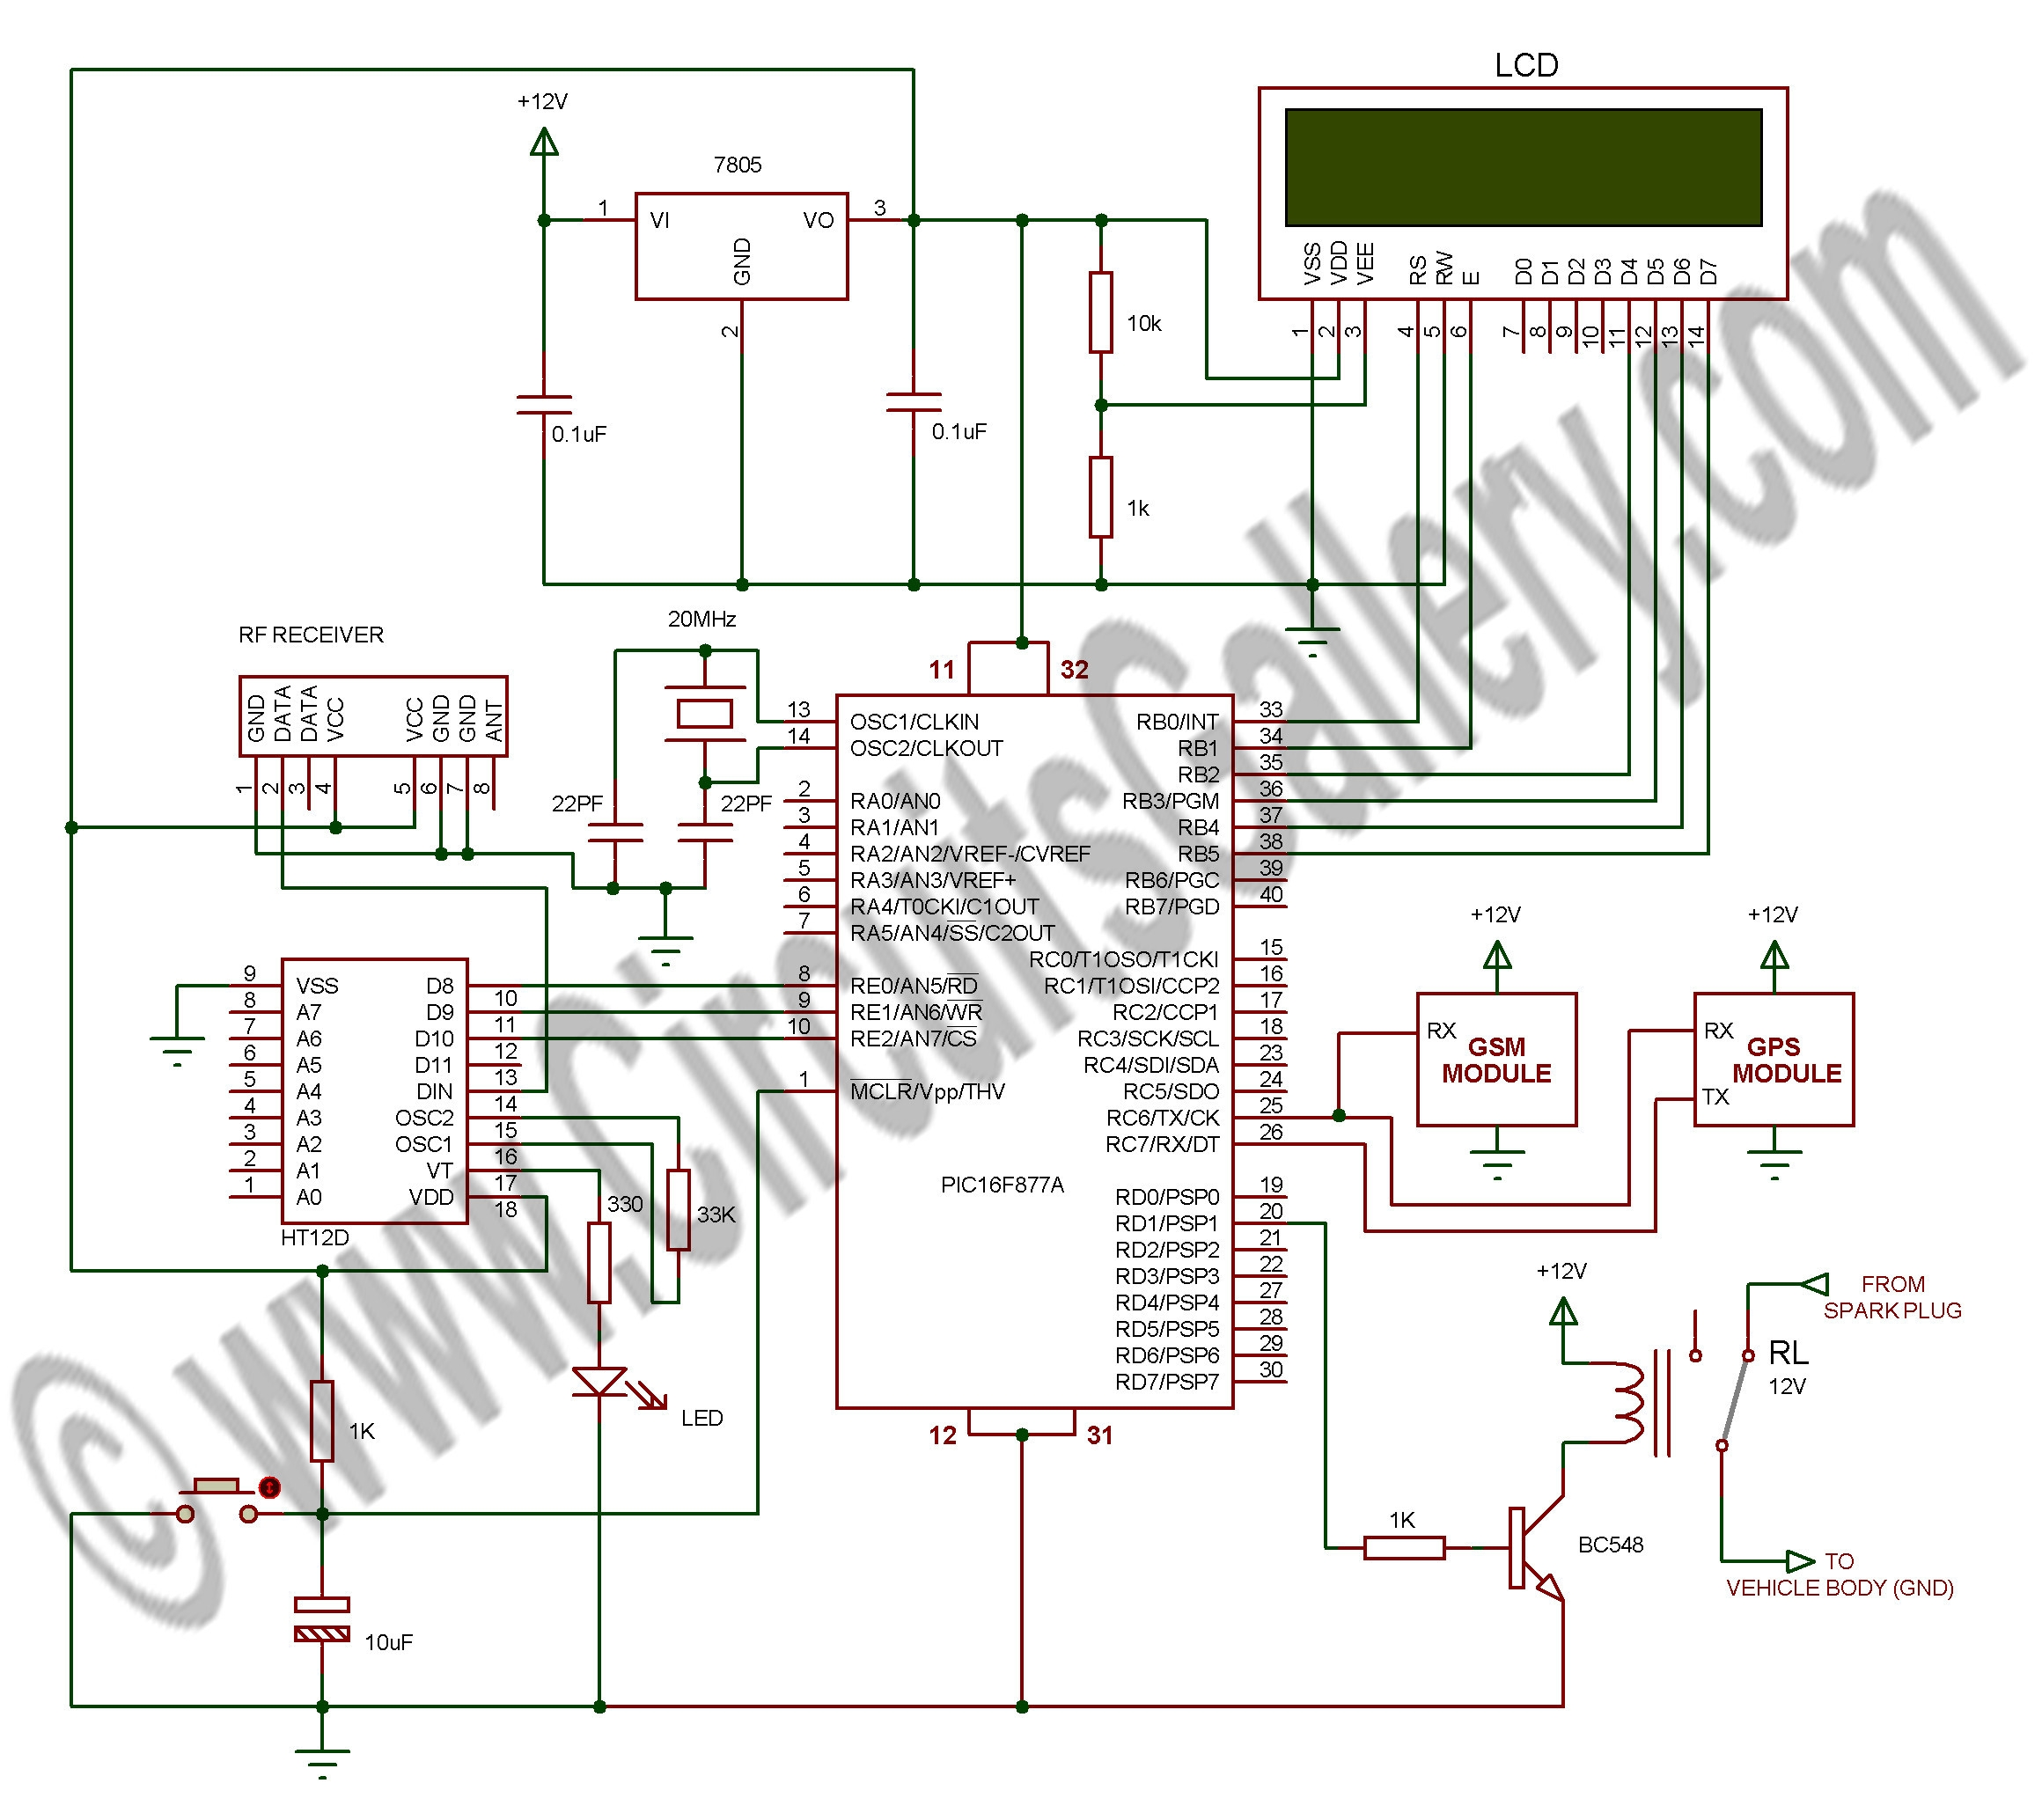 high pressure sodium ballast wiring diagram - wiring diagram for metal  halide lights inspirational wiring diagram